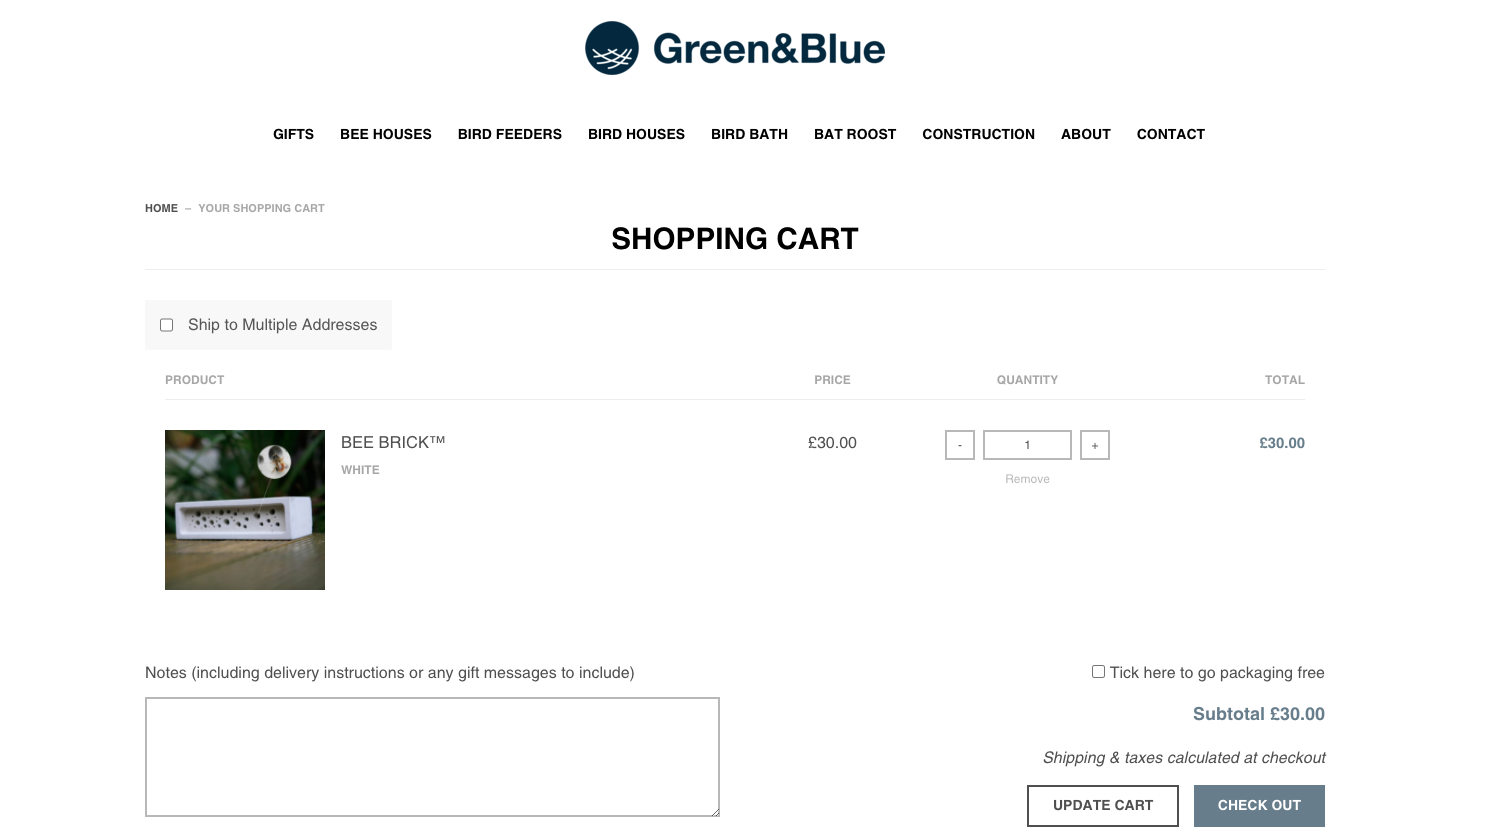 Screenshot of the Green&Blue checkout with packaging free option box